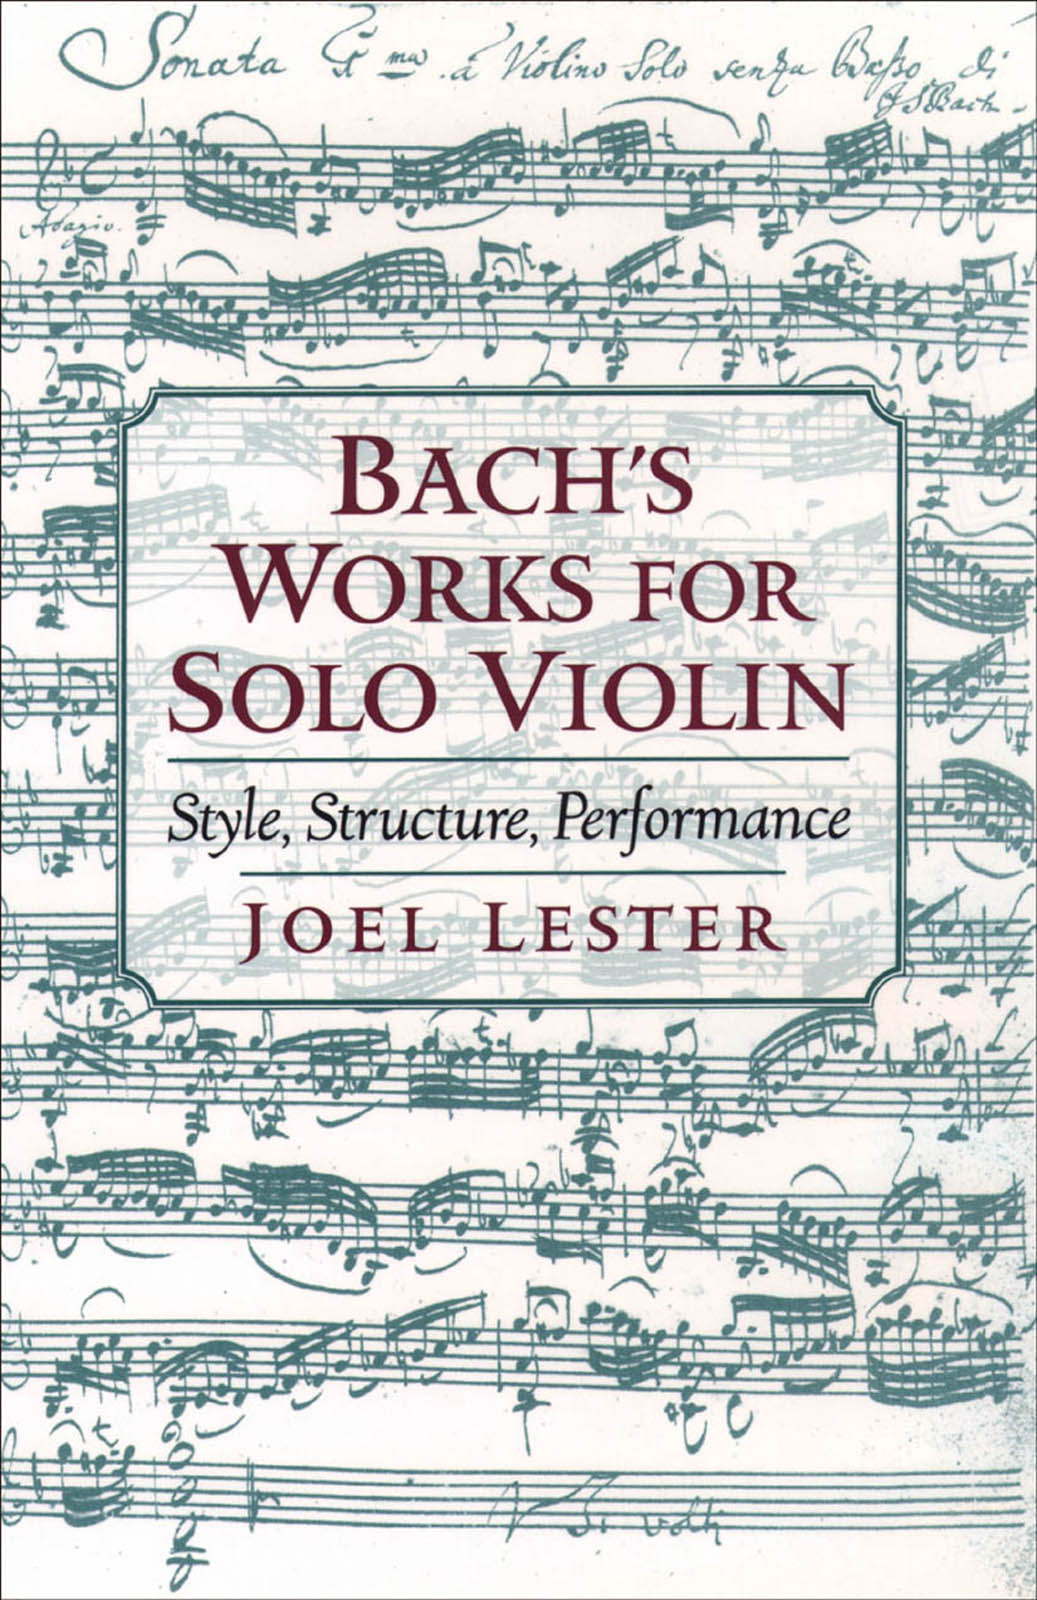 Bach's Works for Solo Violin:Style, Structure, Performance